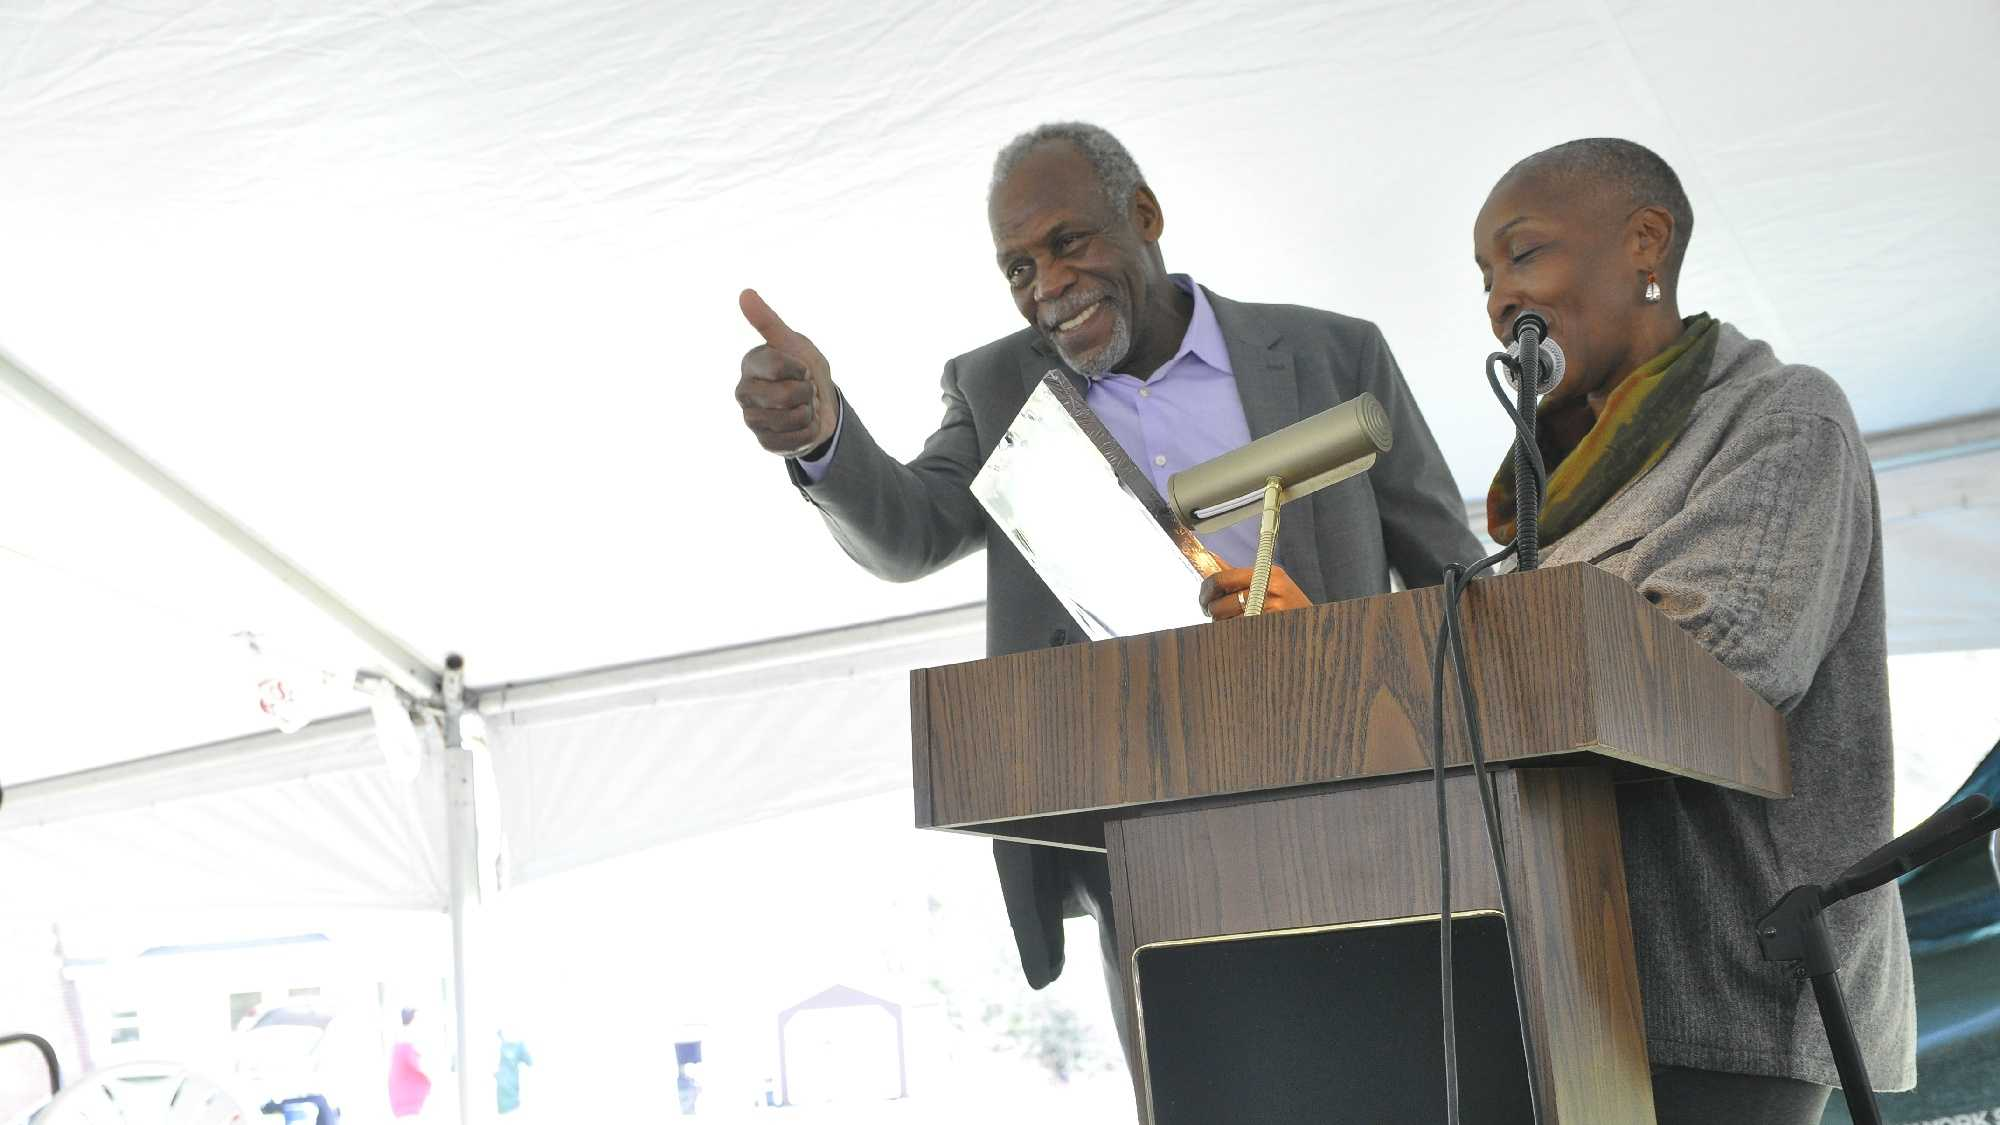 Danny Glover accepts the Spirit of John Brown Freedom Award from Soffiyah Elijah, executive director of the Correctional Association of New York.